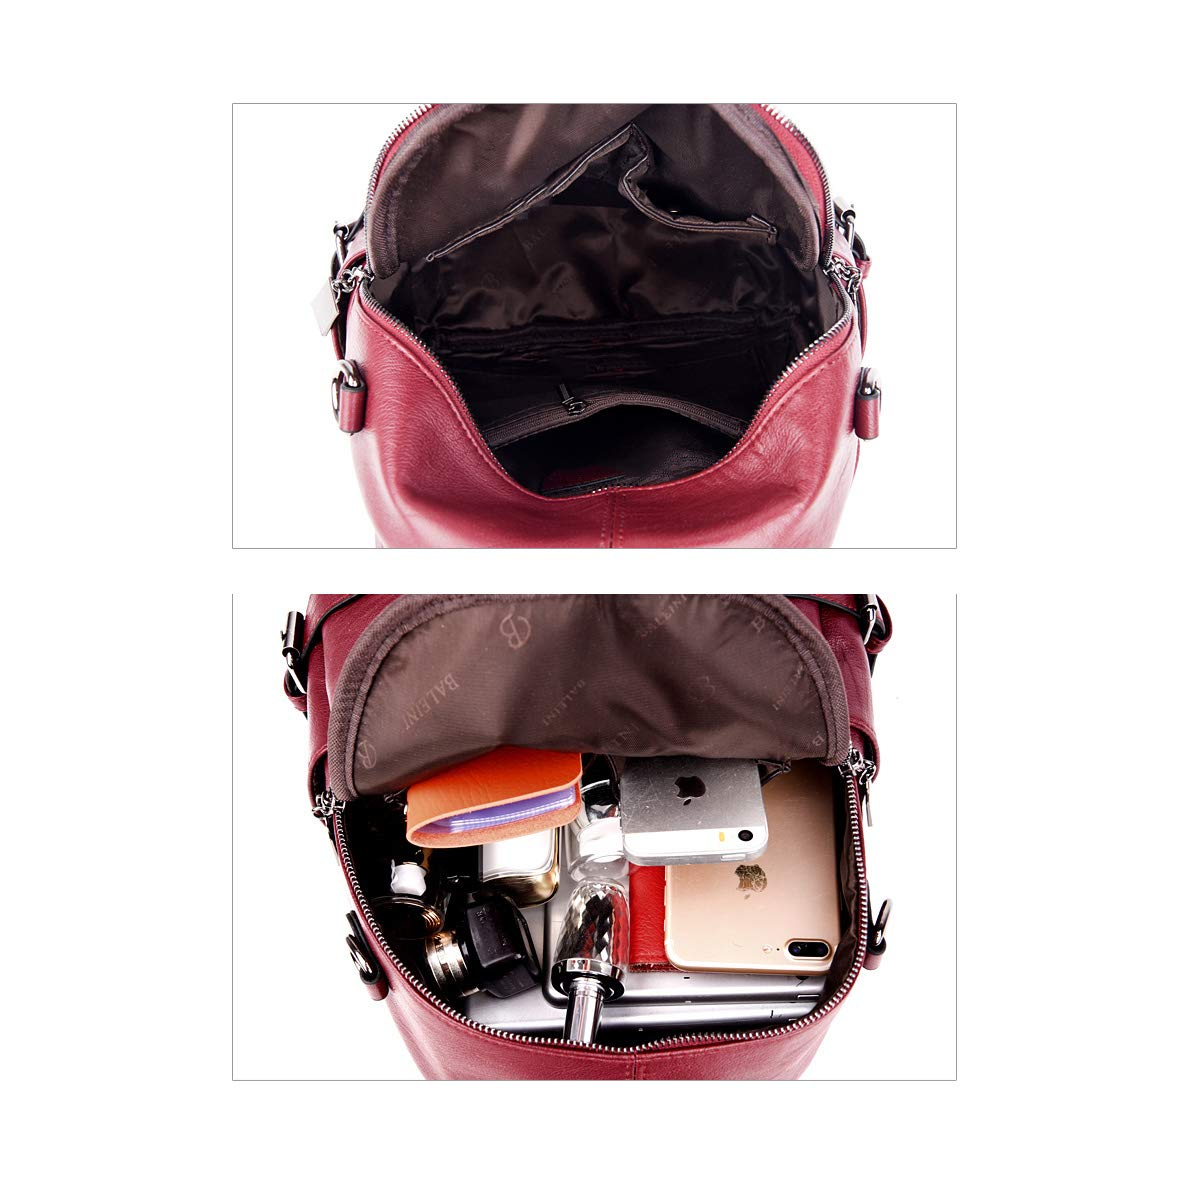 Five Colors for Women /& Men Stylish and Practical PU Leather ZHICHUANG Girls Multipurpose Backpack for Daily Travel//Outdoor//Travel//School//Work//Fashion//Leisure